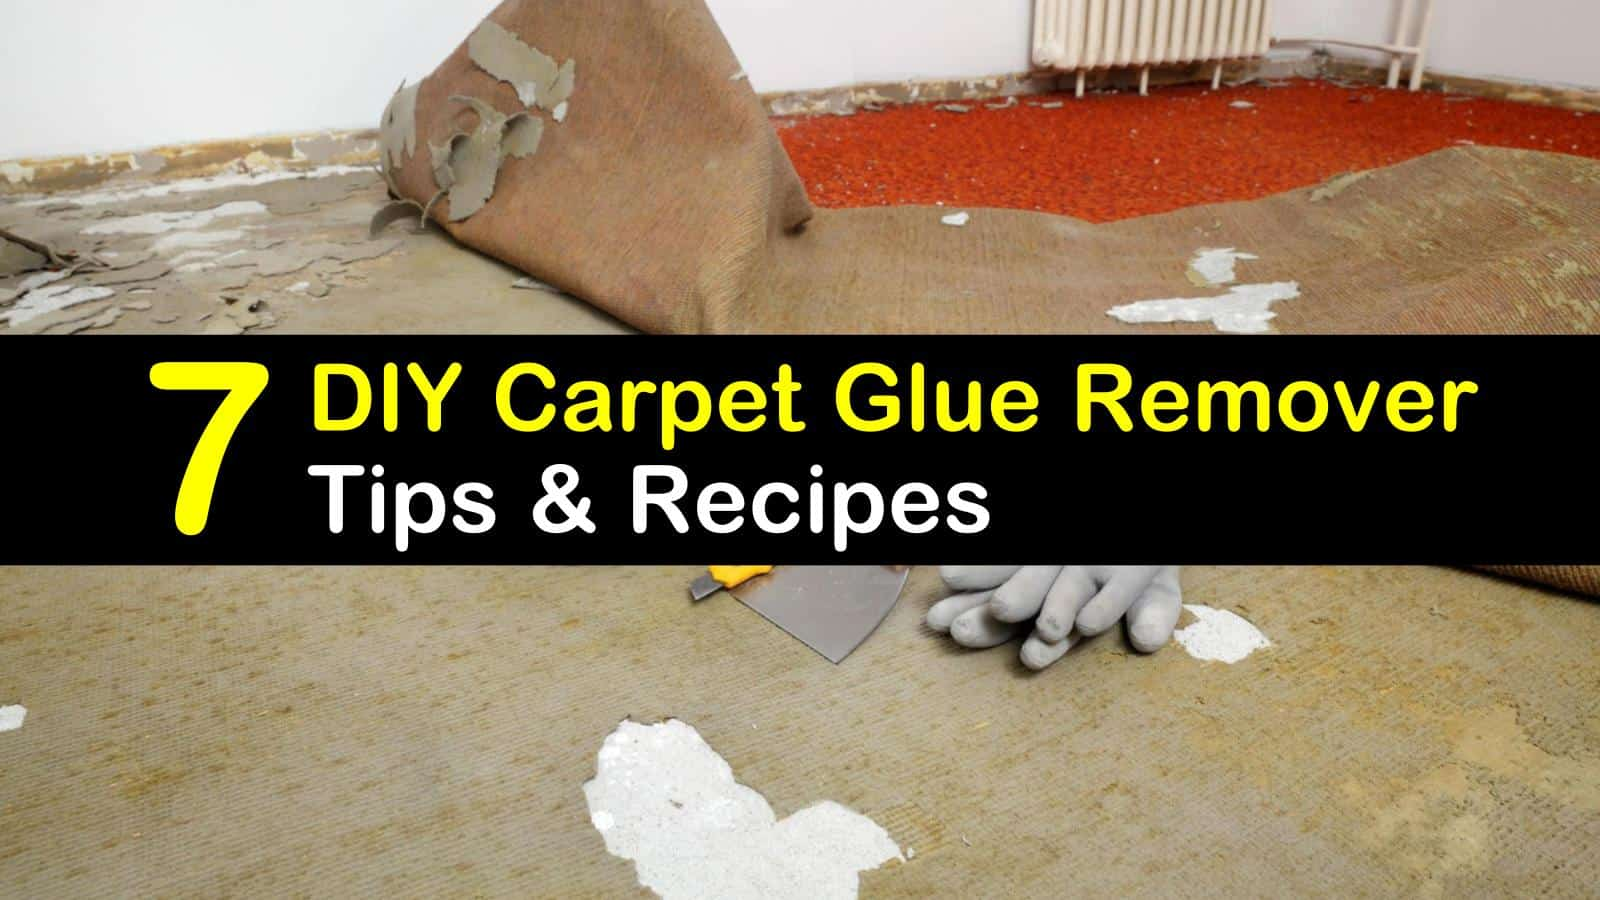 diy carpet glue remover titleimg1